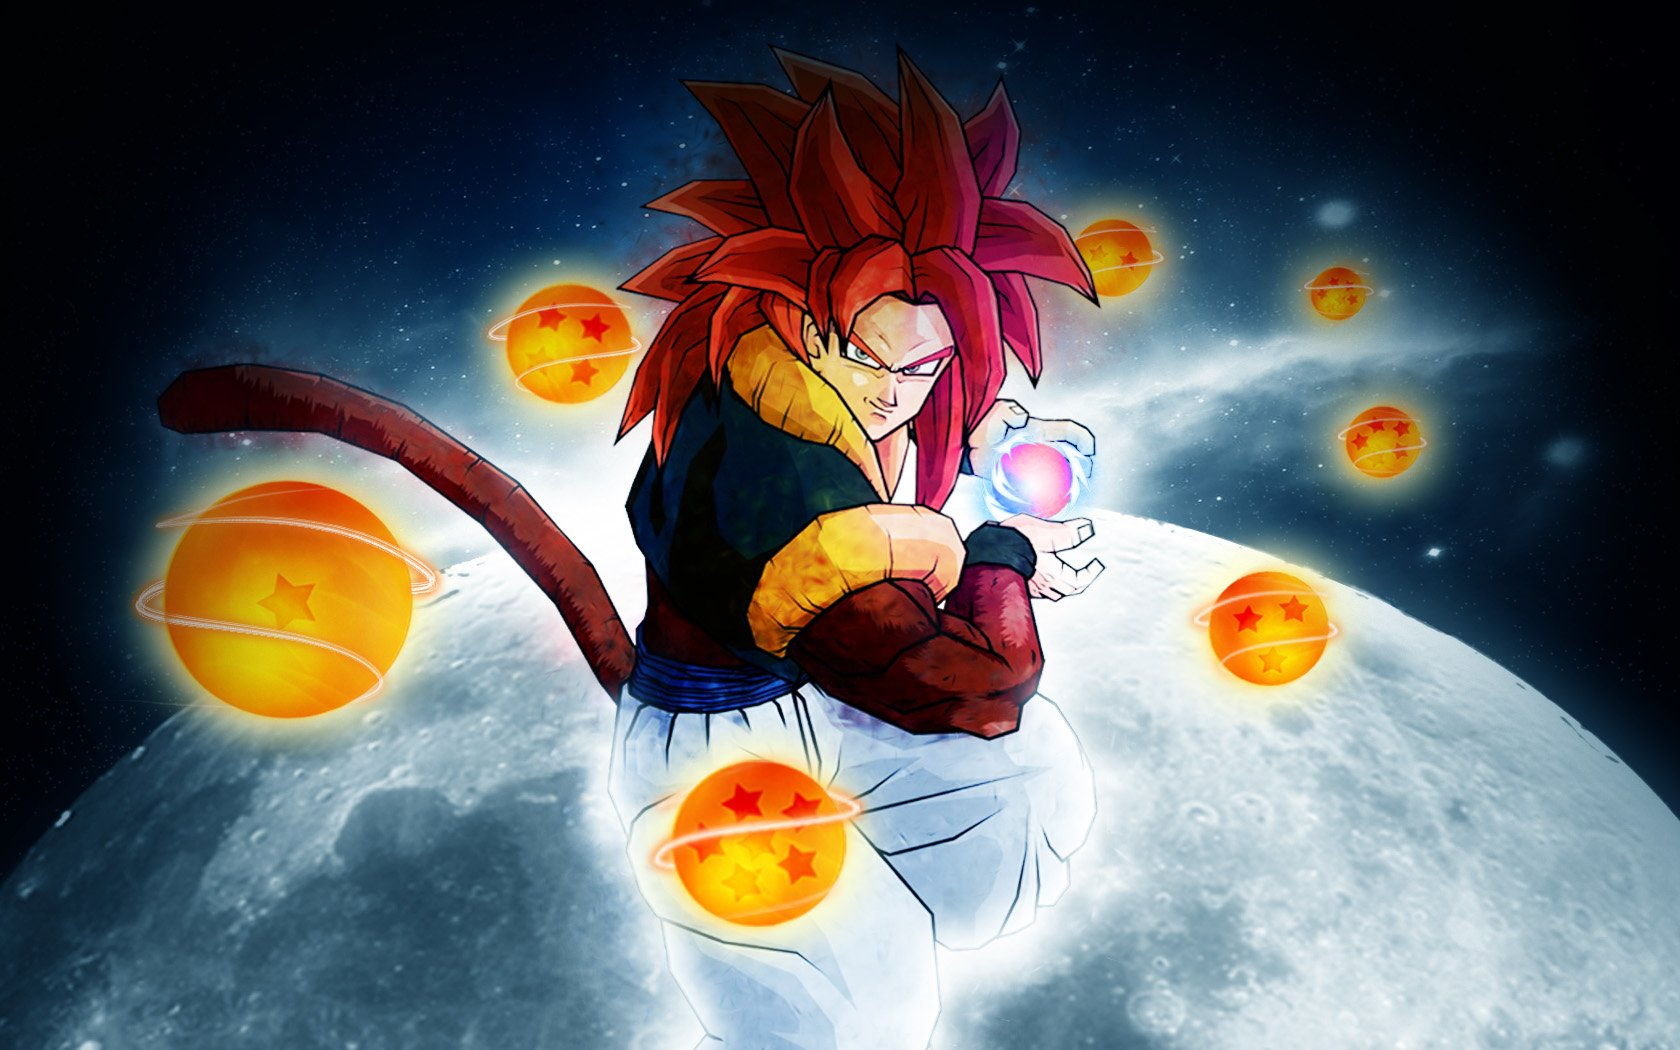 dragonball z wallpapers gokujpeg 1680x1050